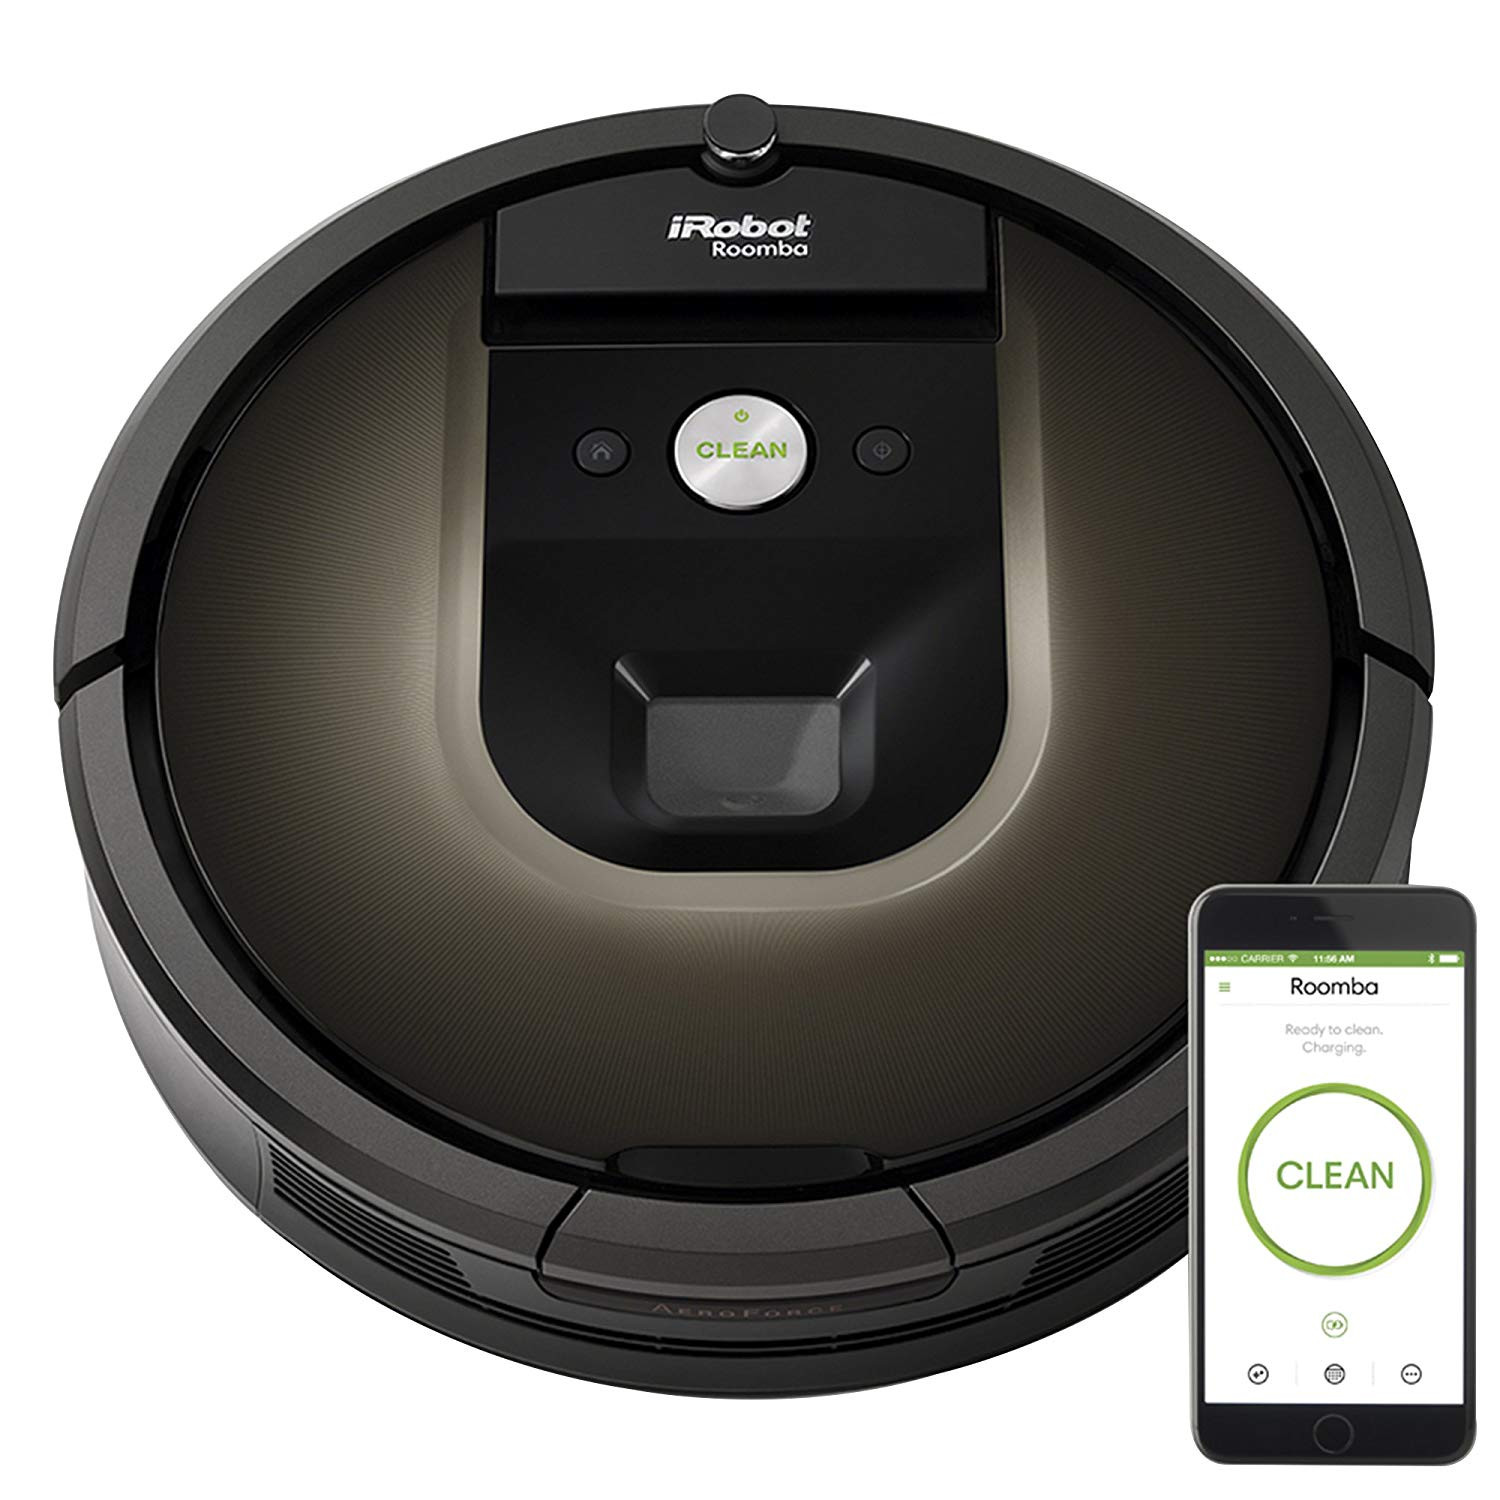 best robot vacuum for pet hair on hardwood floors of 7 best robot vacuums in 2018 with high quality cleaning intended for irobot roomba 980 robotic vacuum cleaner best robot vacuum cleaner for carpets